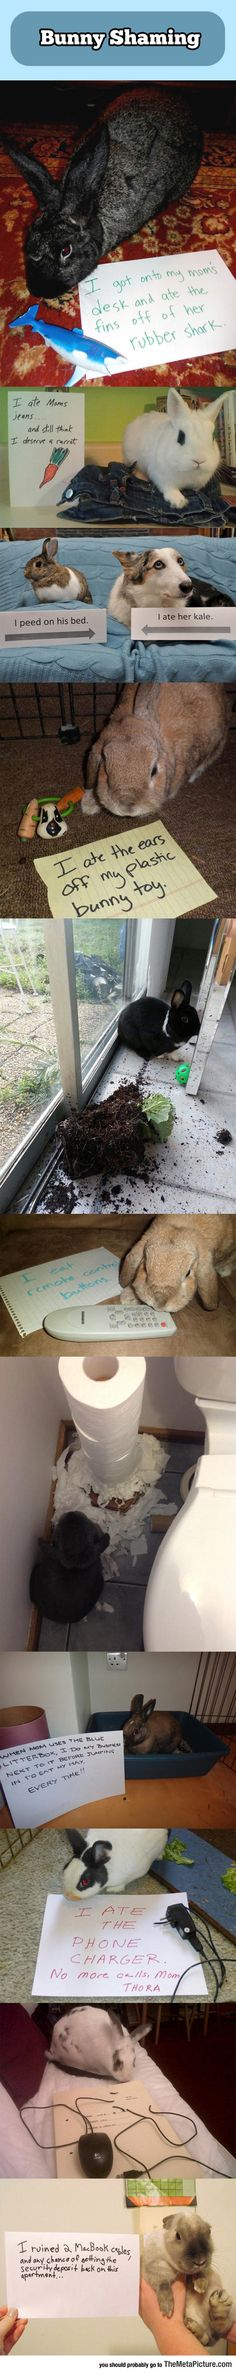 When Bunnies Misbehave